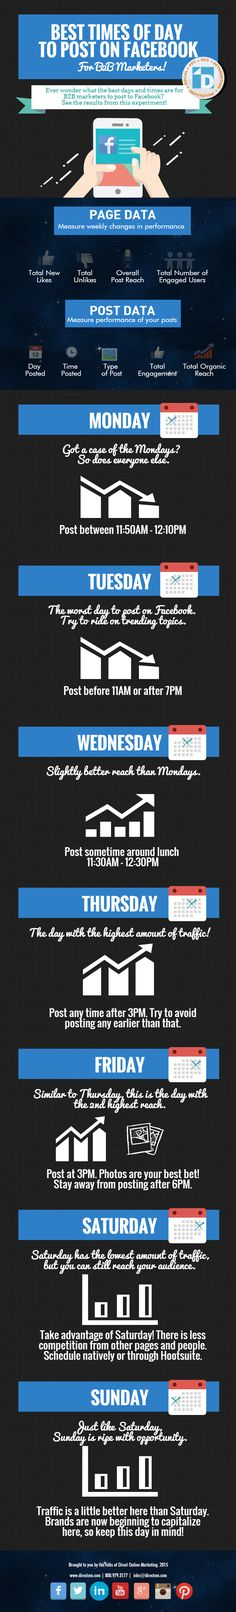 Educational infographic & Data Educational : Educational : Social Media Infographic: The Best Times of Day to P.